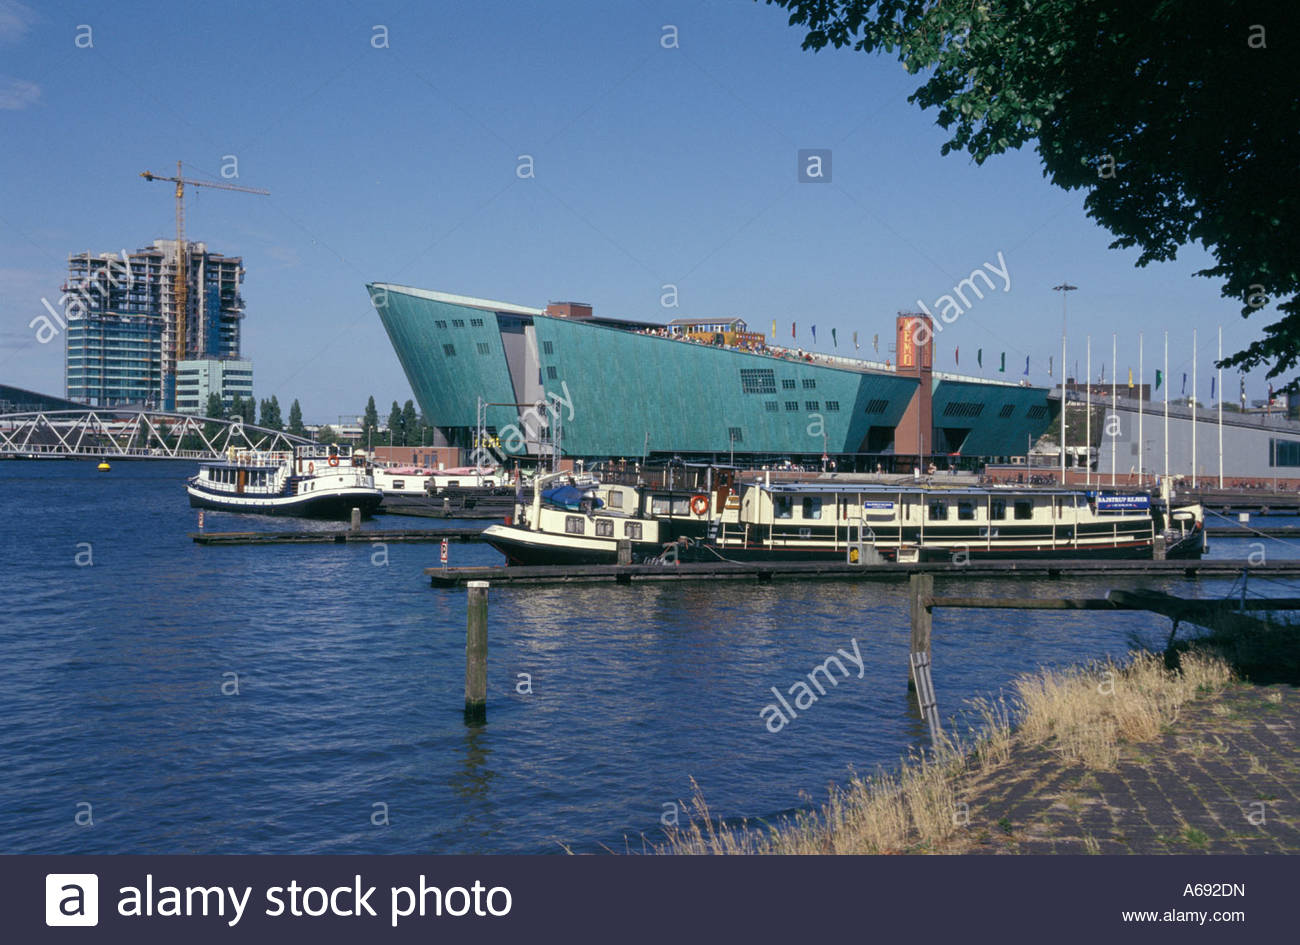 The NEMO science center by architect Renzo Piano in Amsterdam, The Netherlands - Stock Image